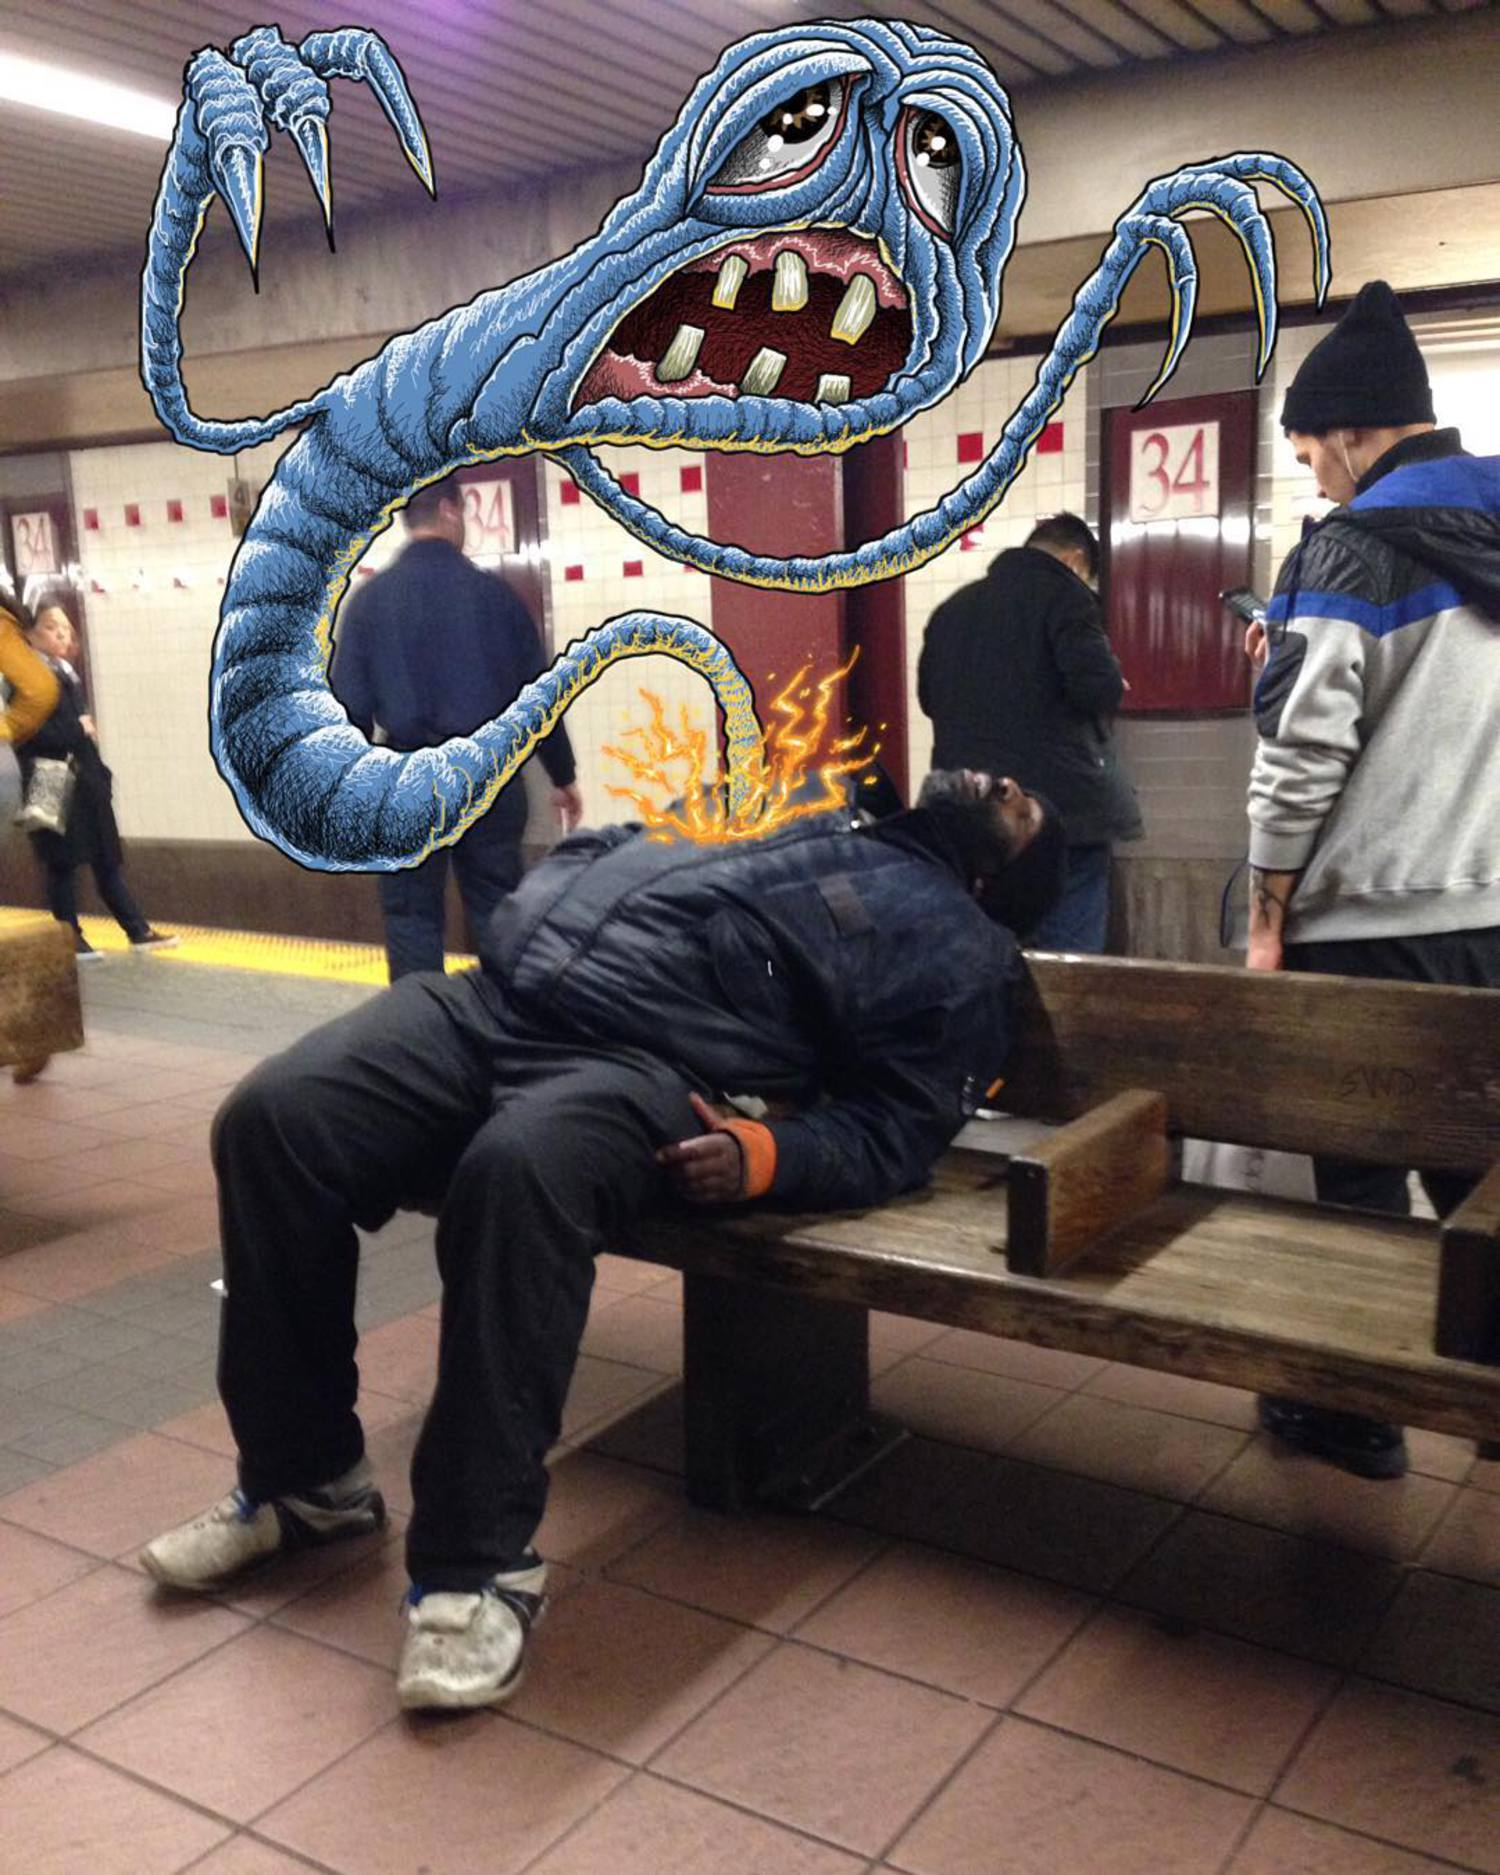 #subwaydoodle #subway #doodle #swd #ghost #nyc #ghostsofnyc #possessed